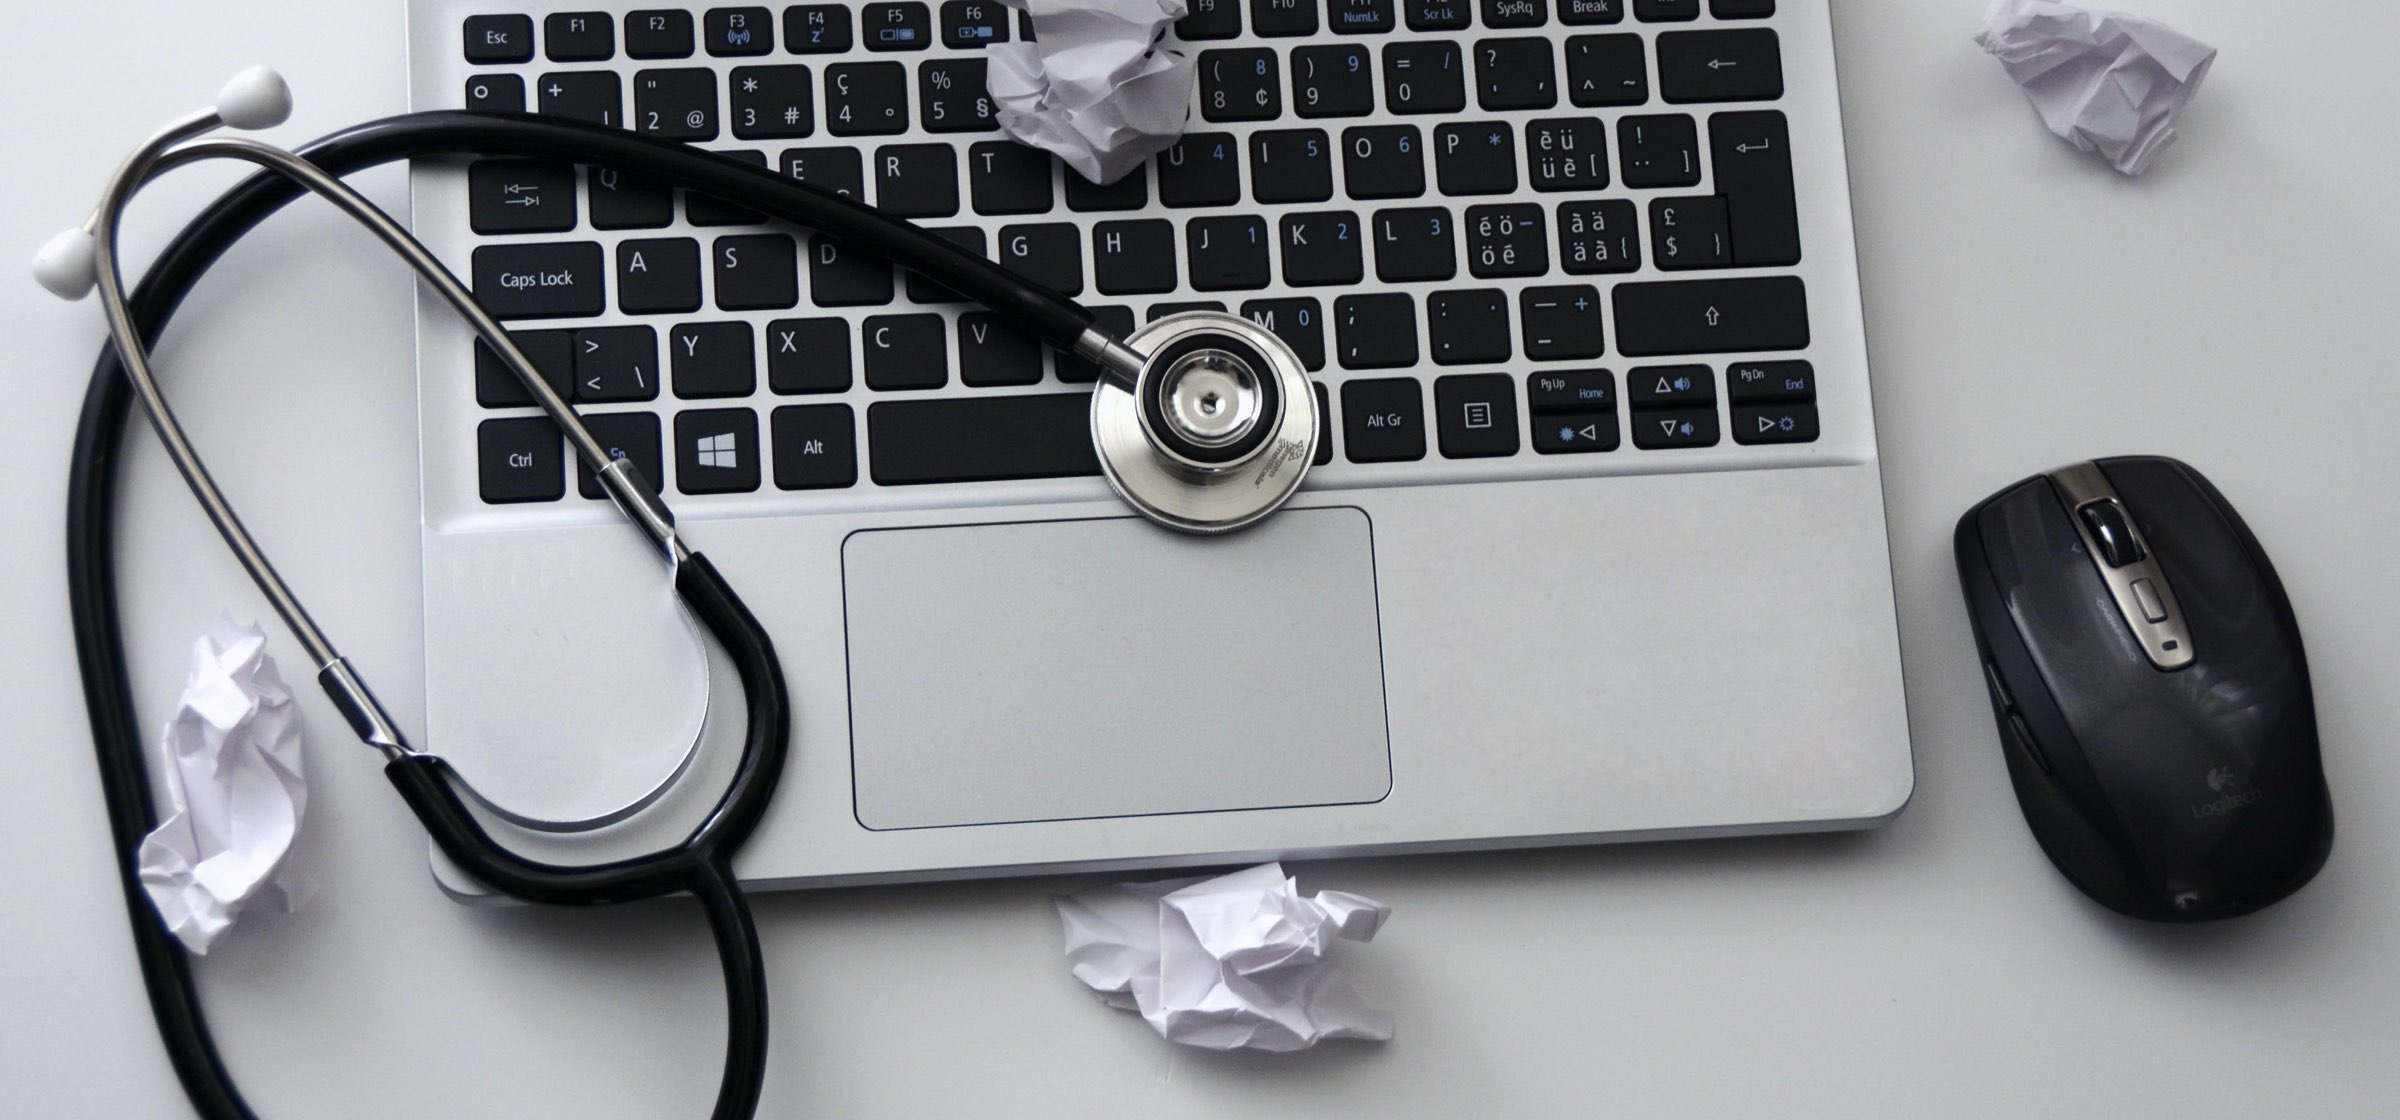 Study Finds EHR Messaging Overload Contributes to Physician Burnout